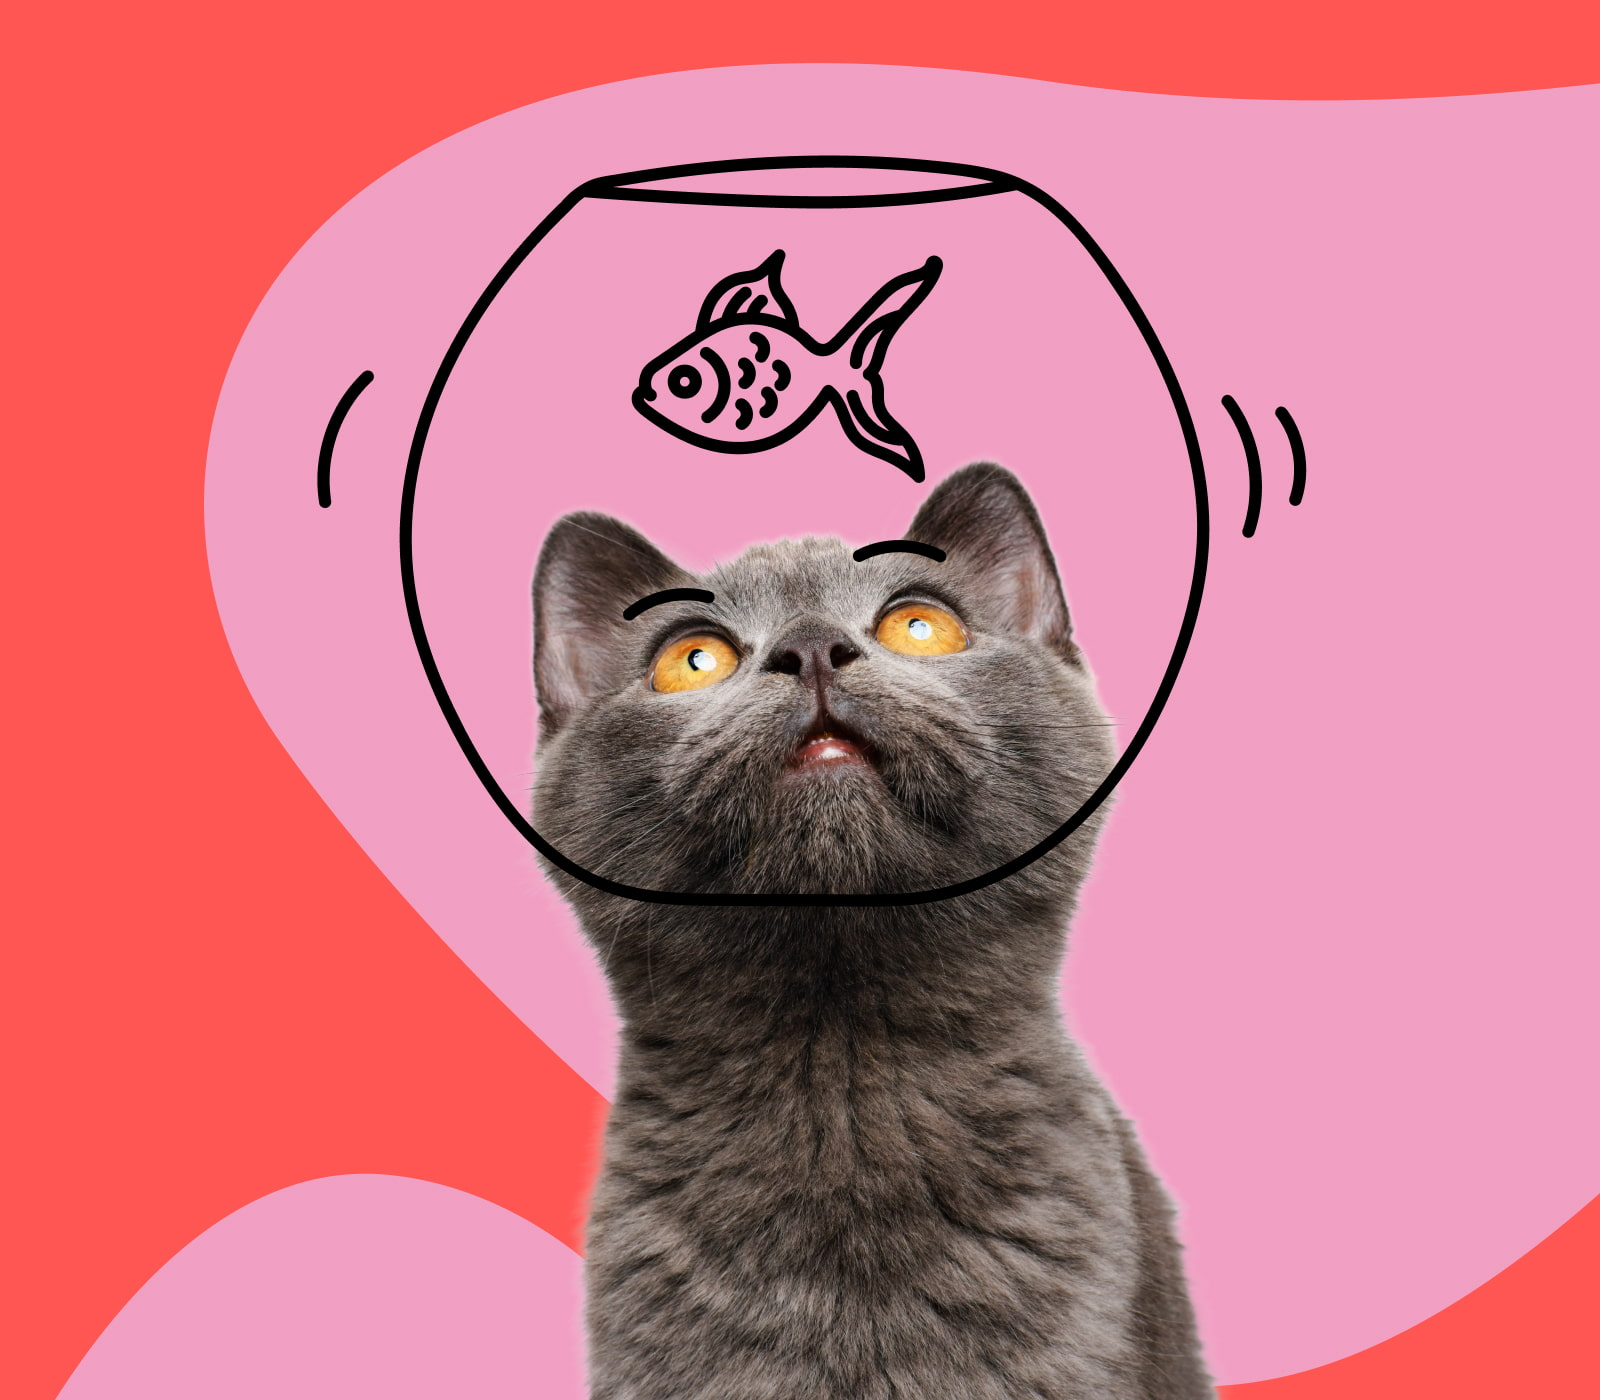 A cat with his head in a fishbowl looking up at a fish